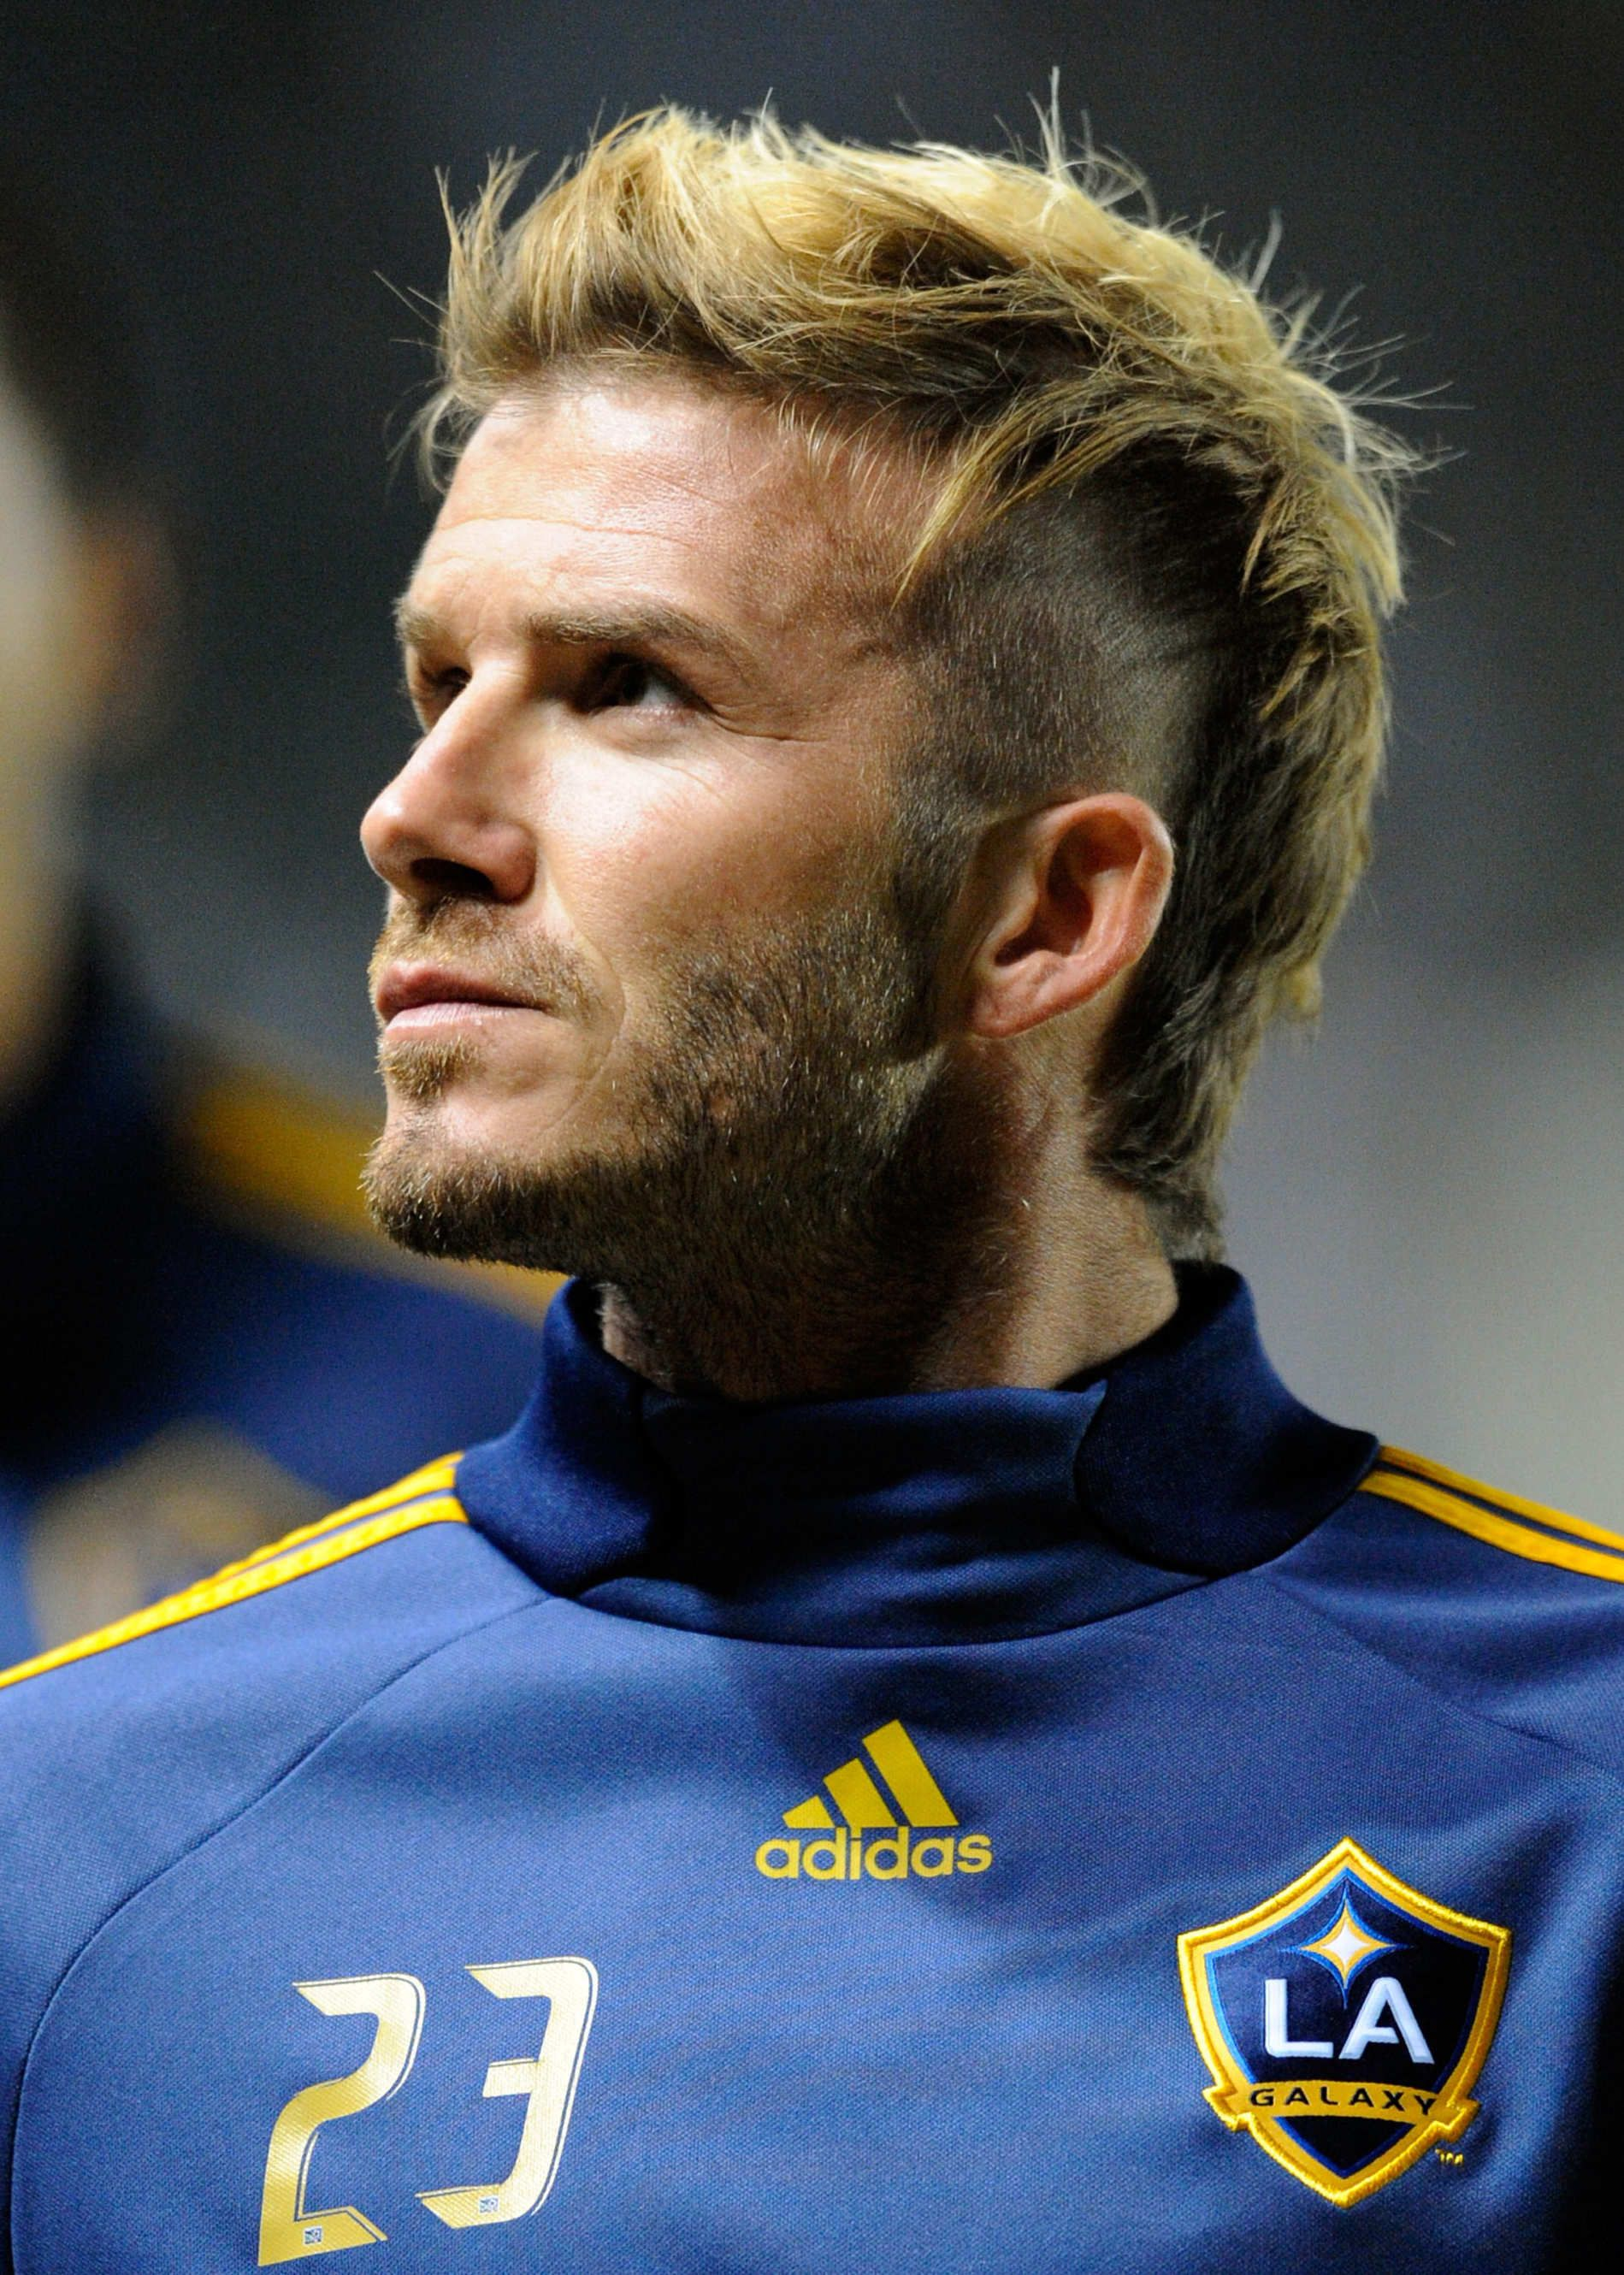 43 of the best non-punk mohawks ever | perdy peeps | beckham